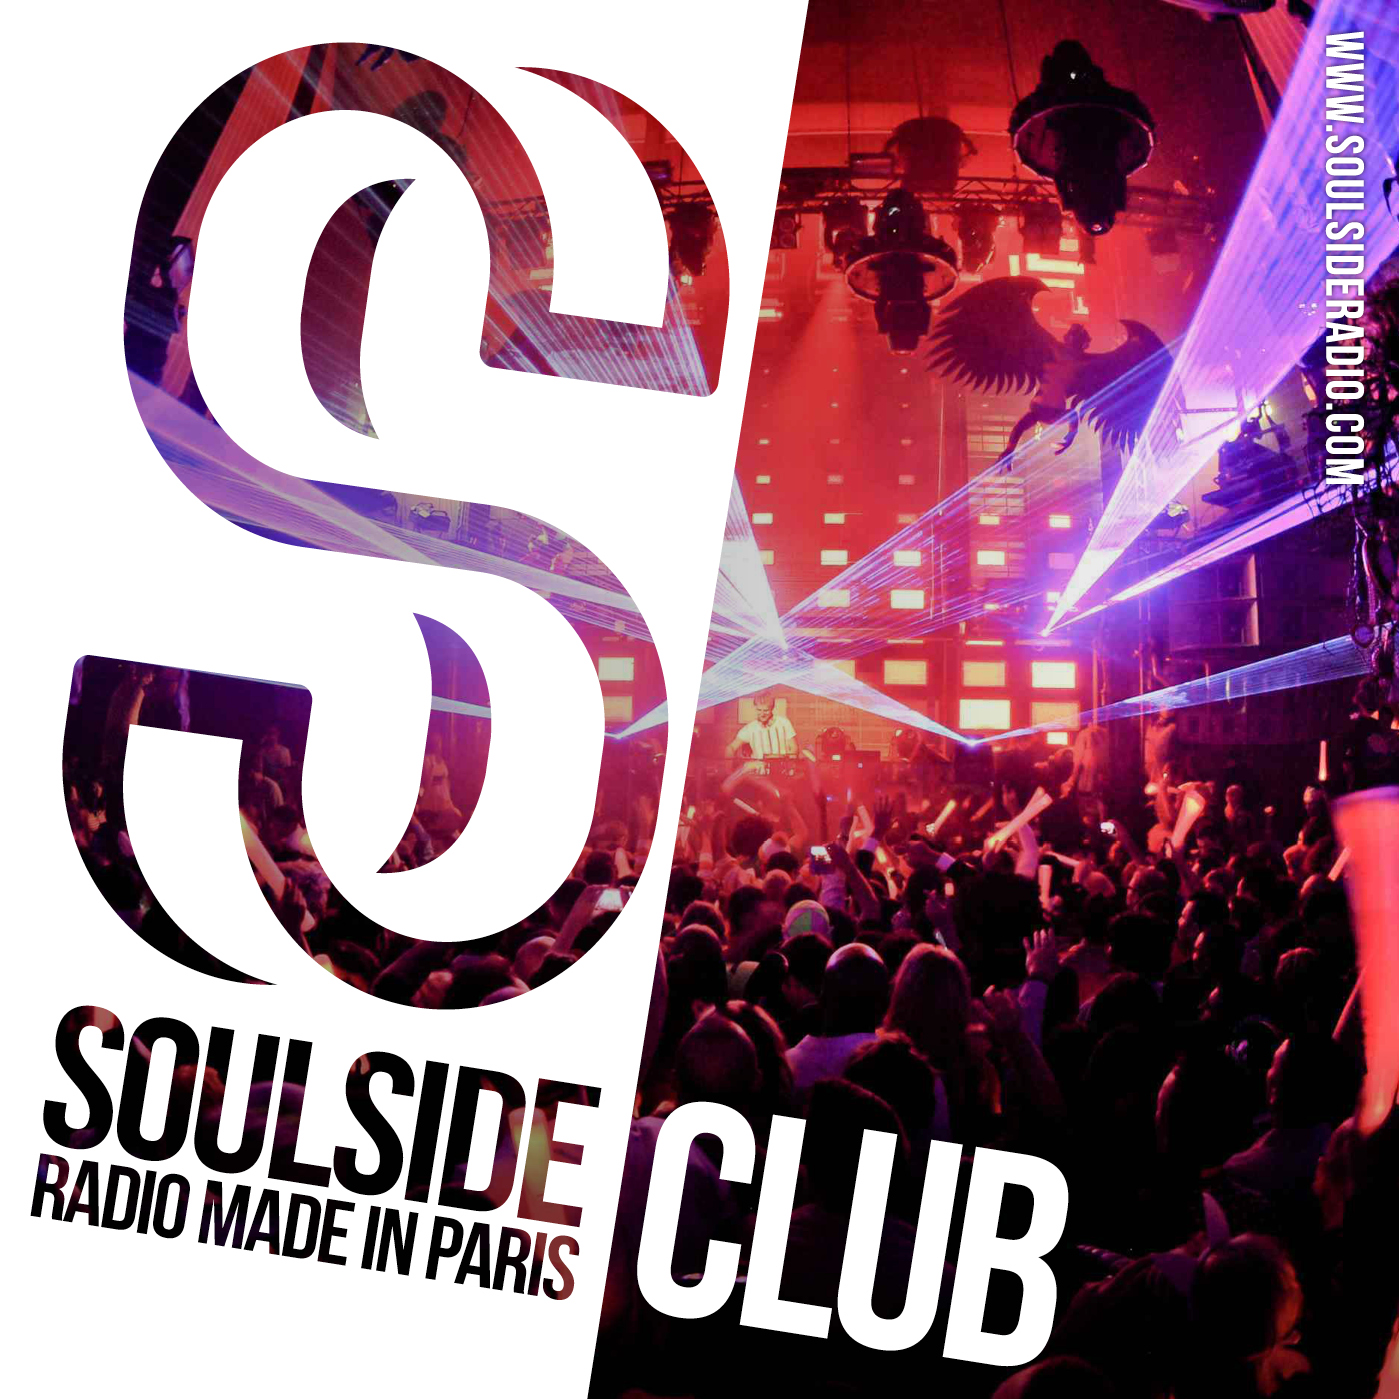 CLUB - Soulside Radio